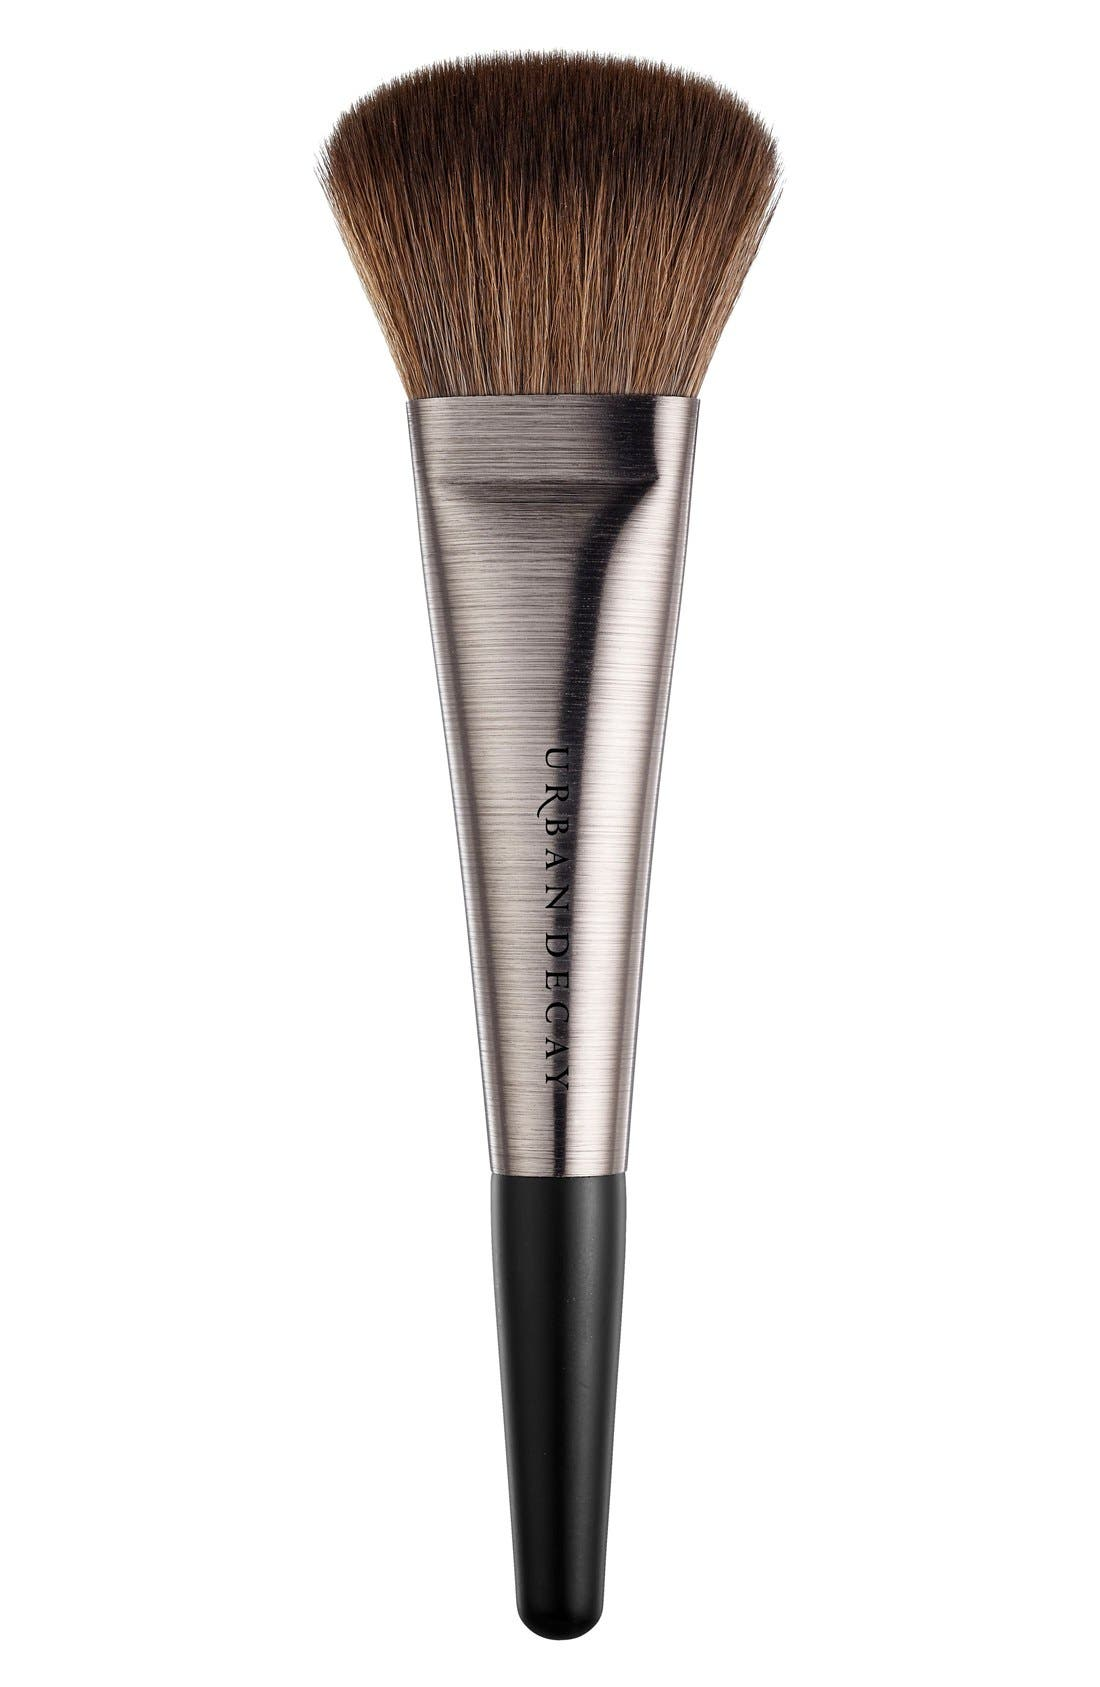 Urban Decay 'Pro' Large Powder Brush